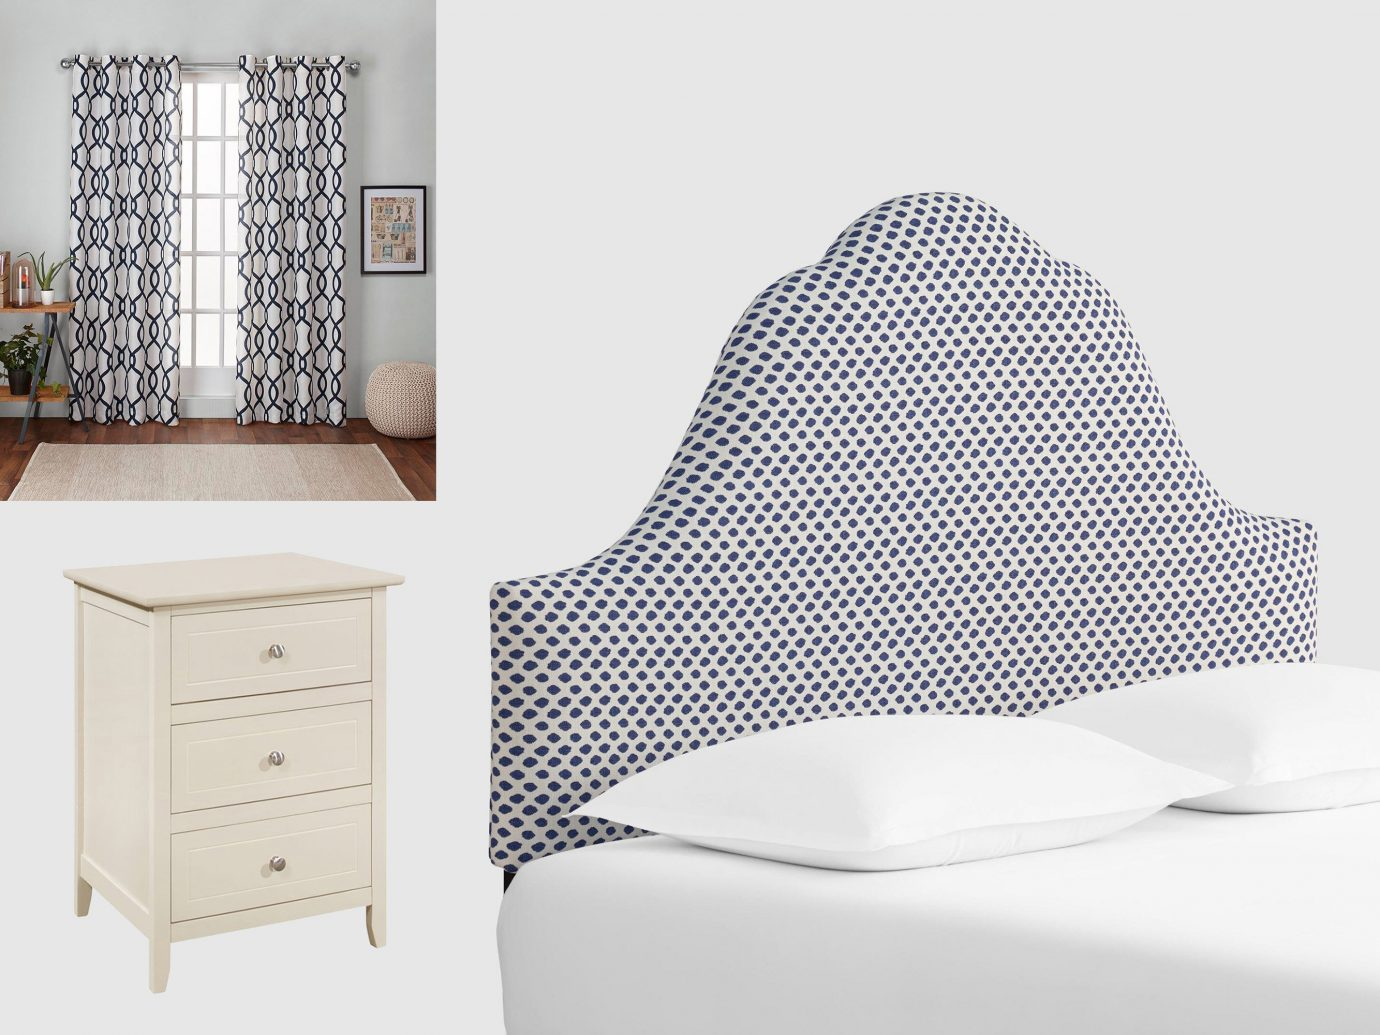 Hotels Travel Shop furniture product product design Design chair pattern angle table chest of drawers interior design